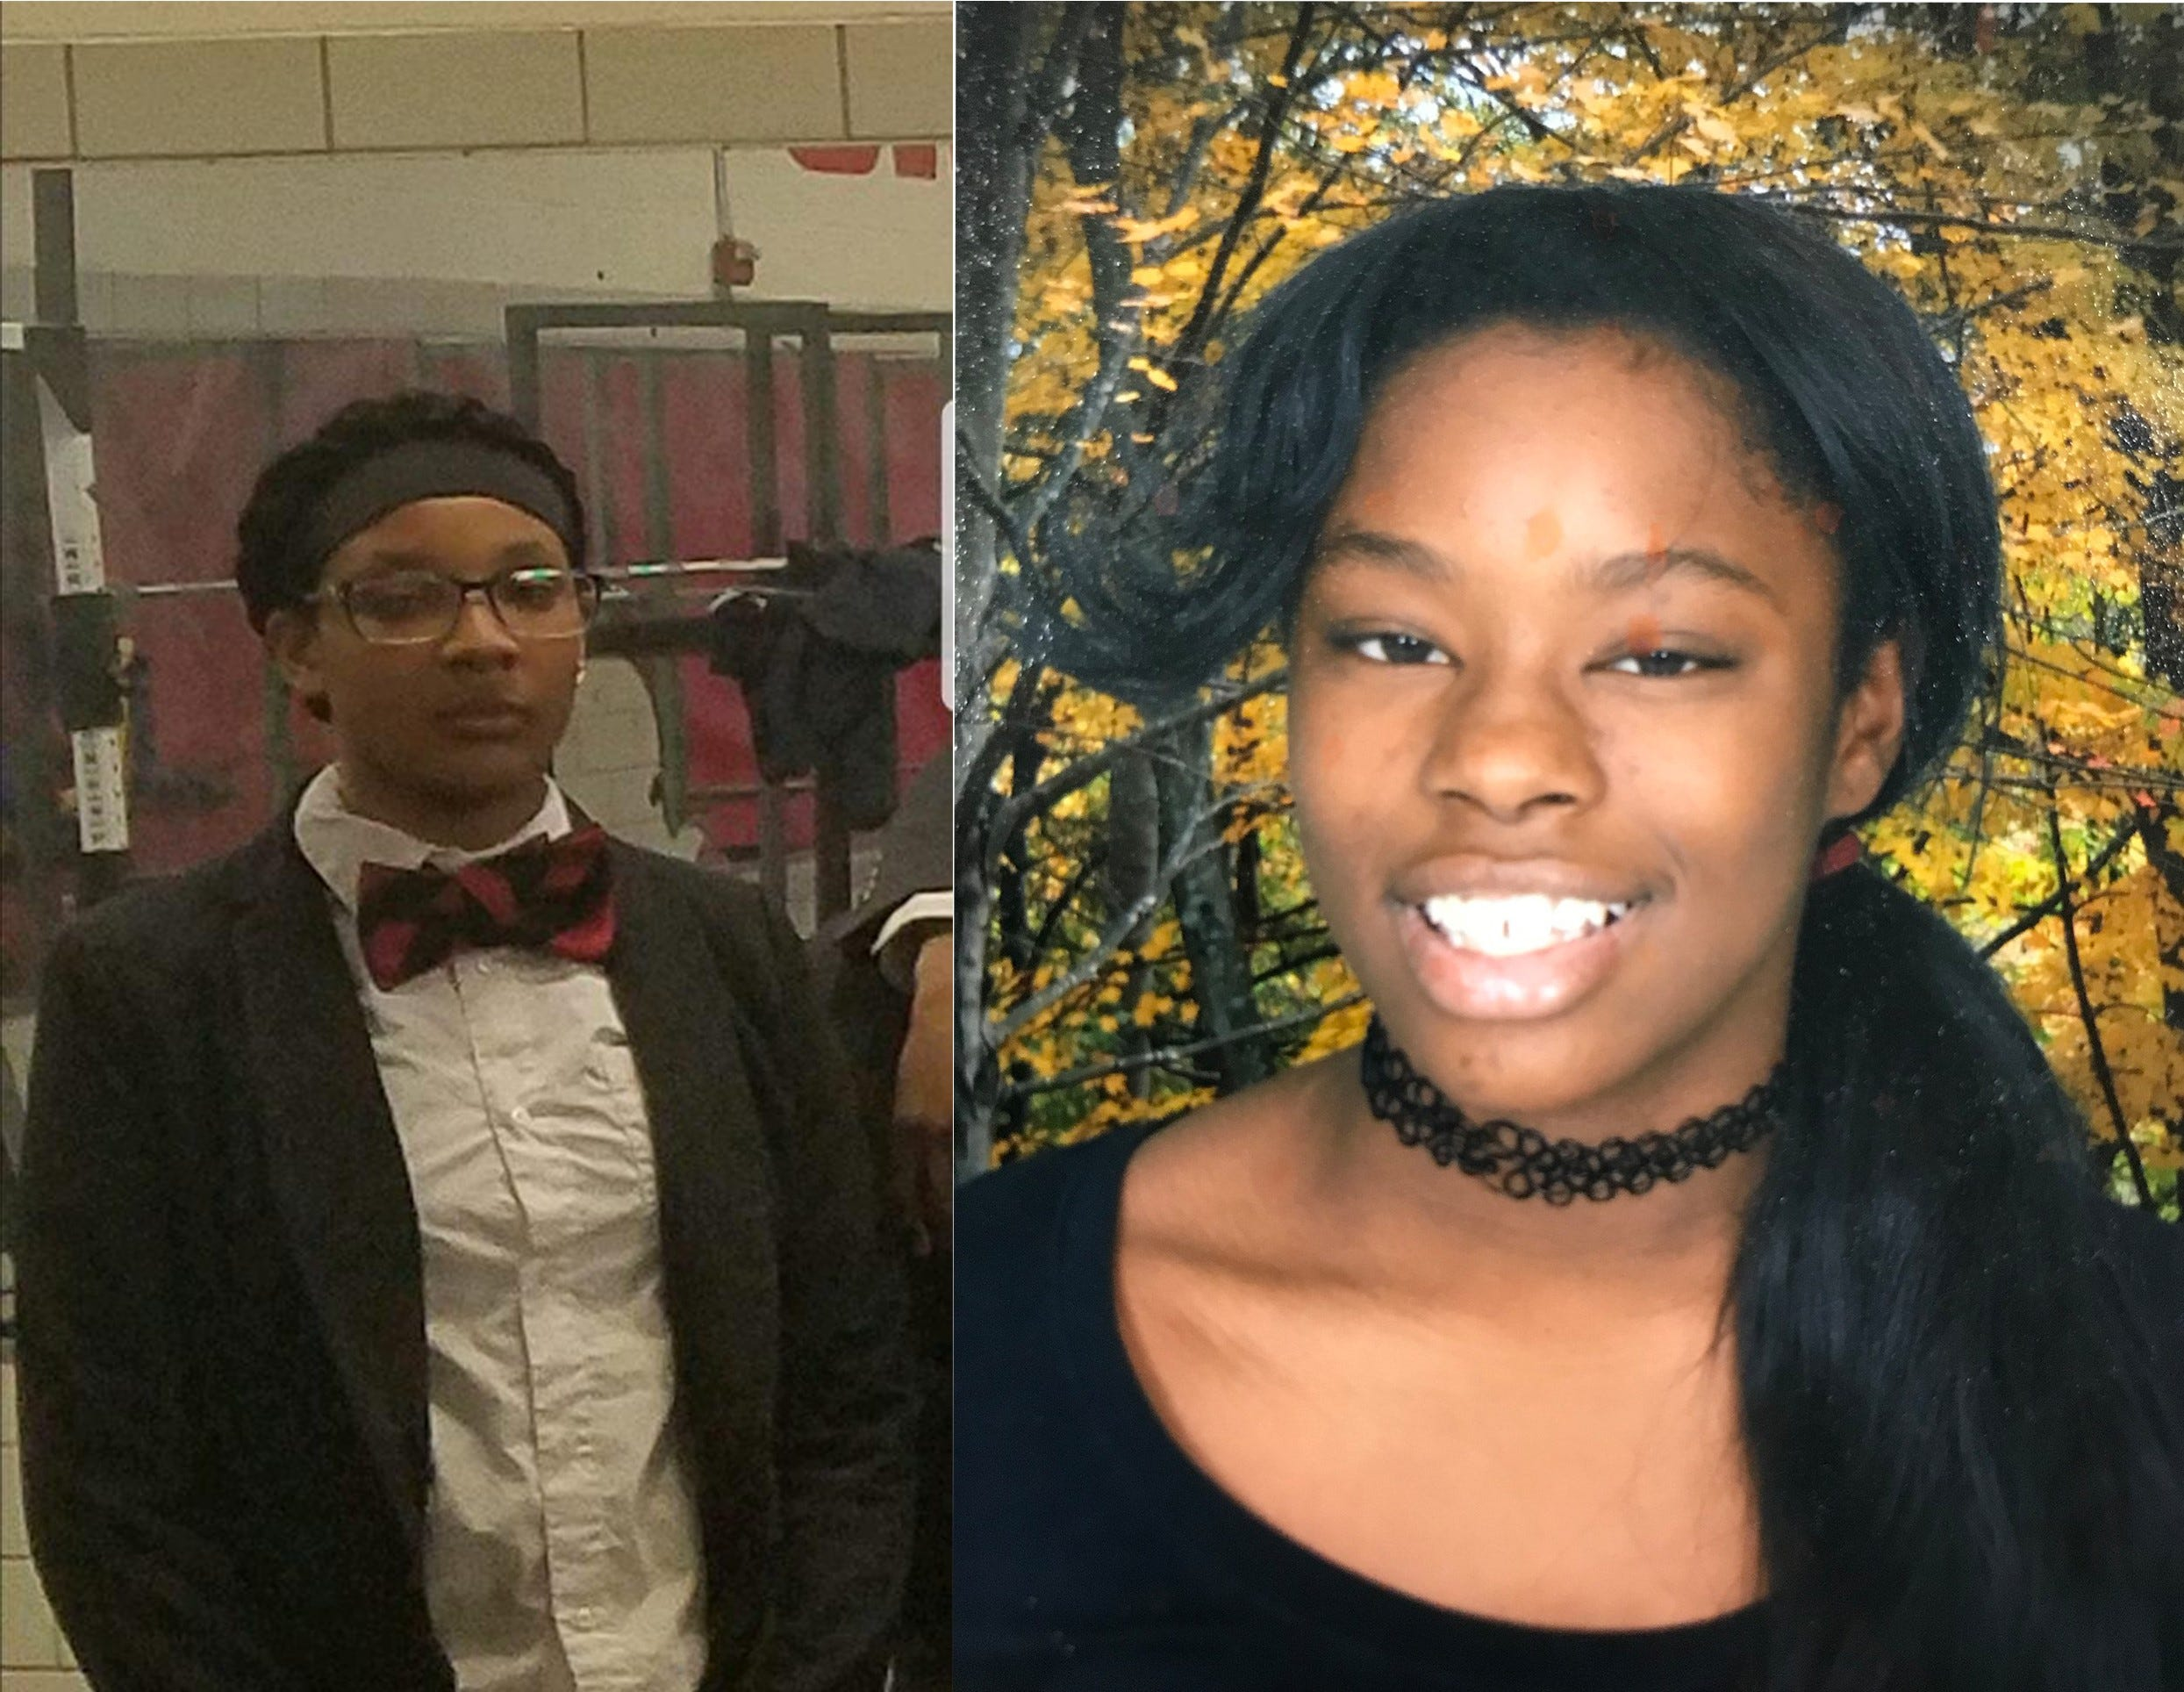 Detroit police searching for two teen girls that went missing Wednesday   Detroit Free Press